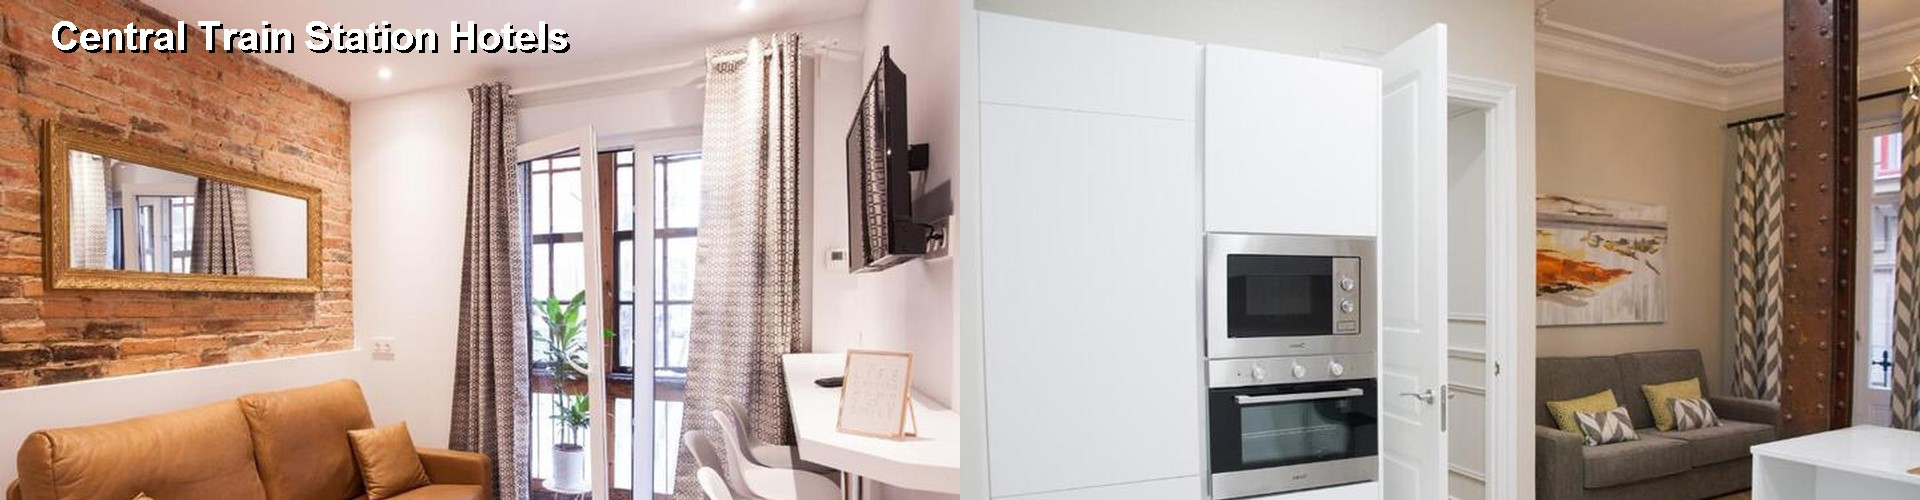 5 Best Hotels near Central Train Station